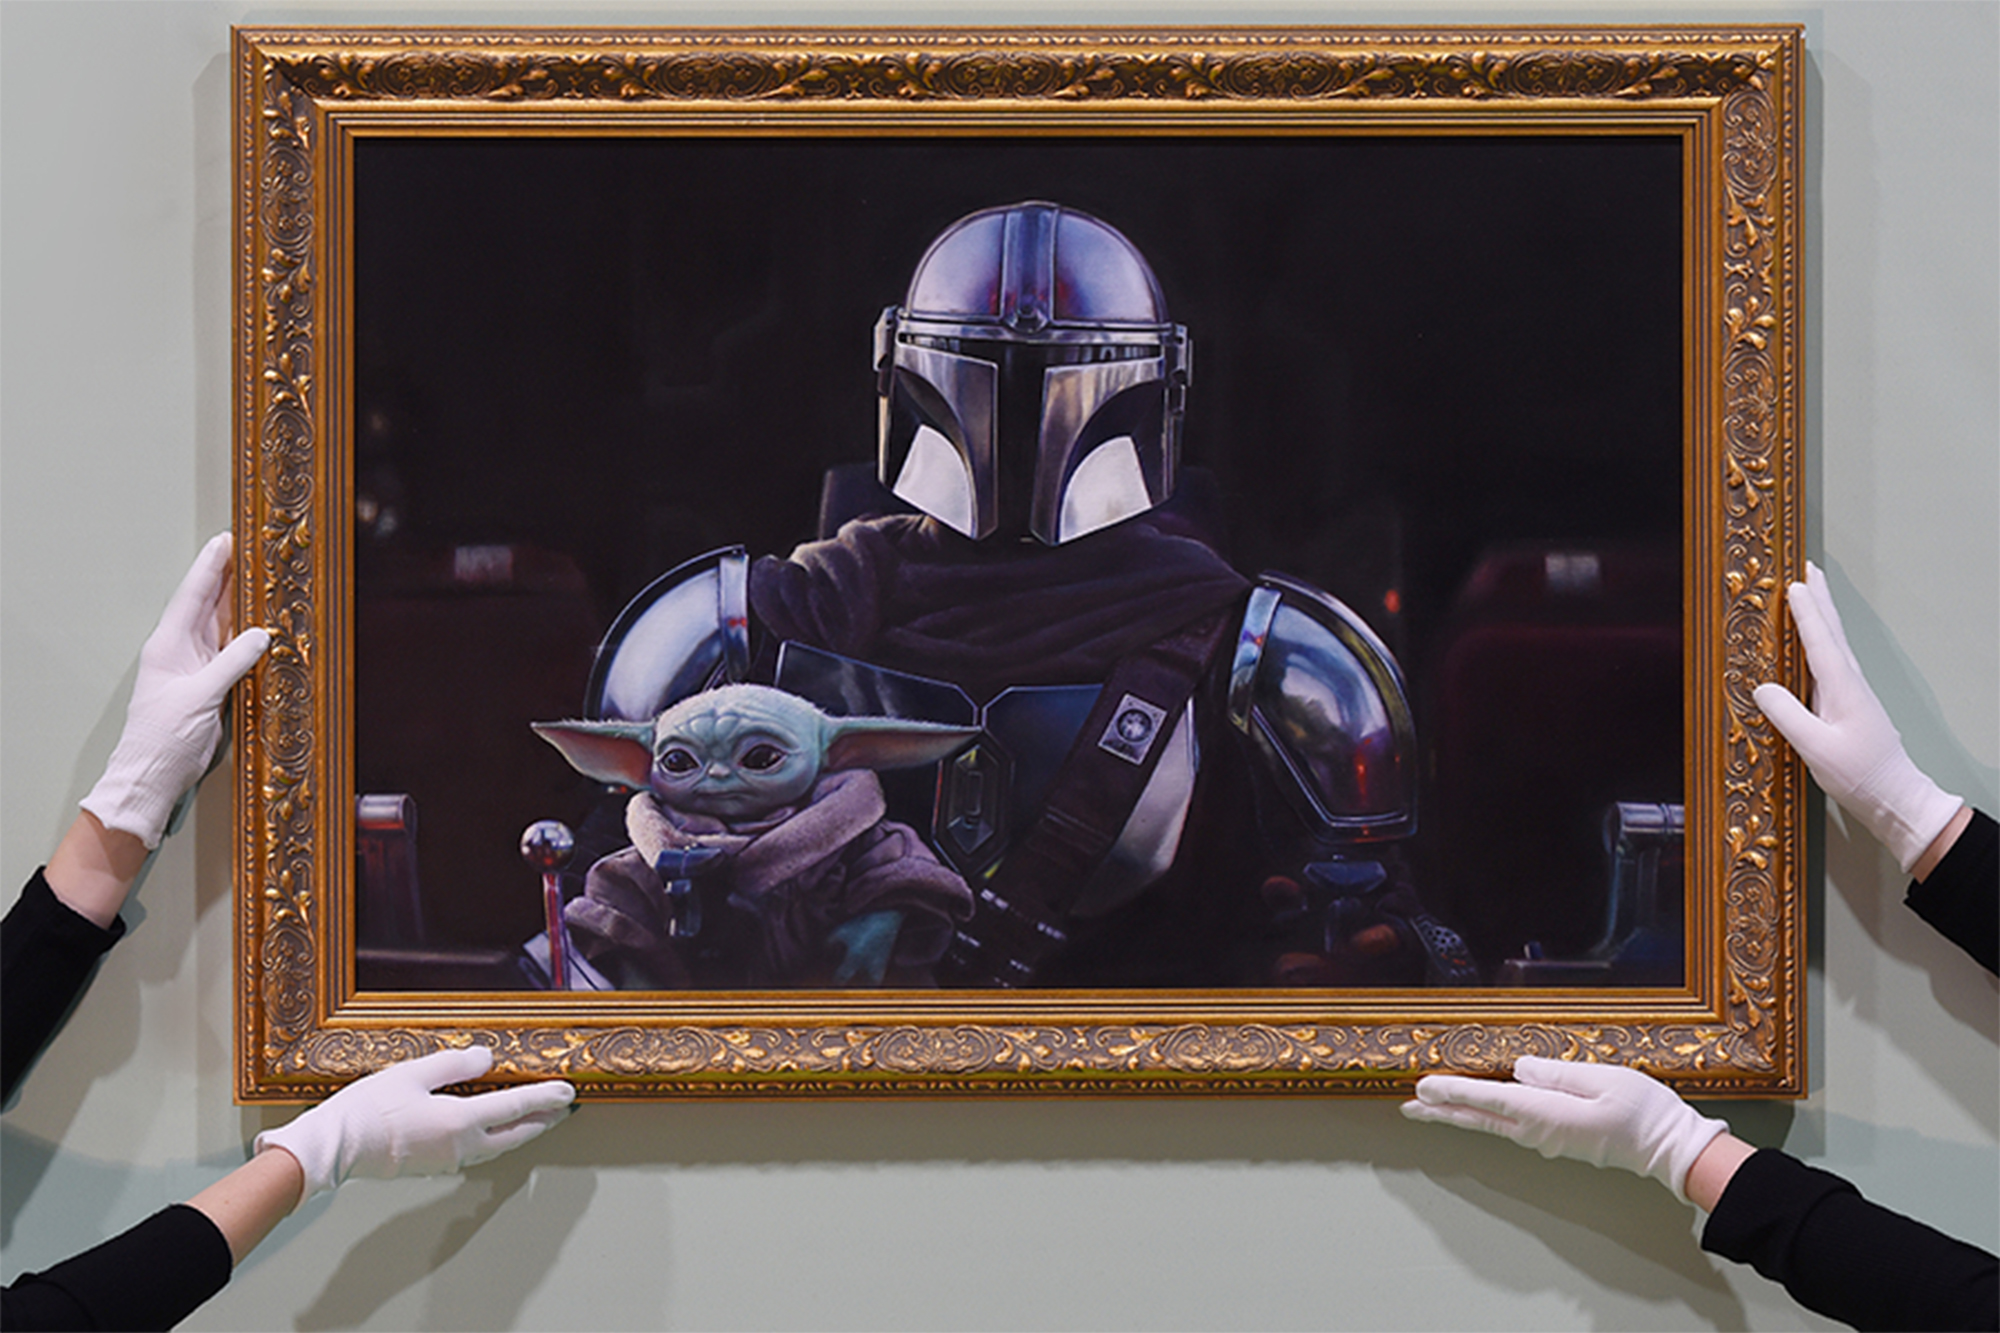 Baby Yoda gets official portrait at National Portrait Gallery